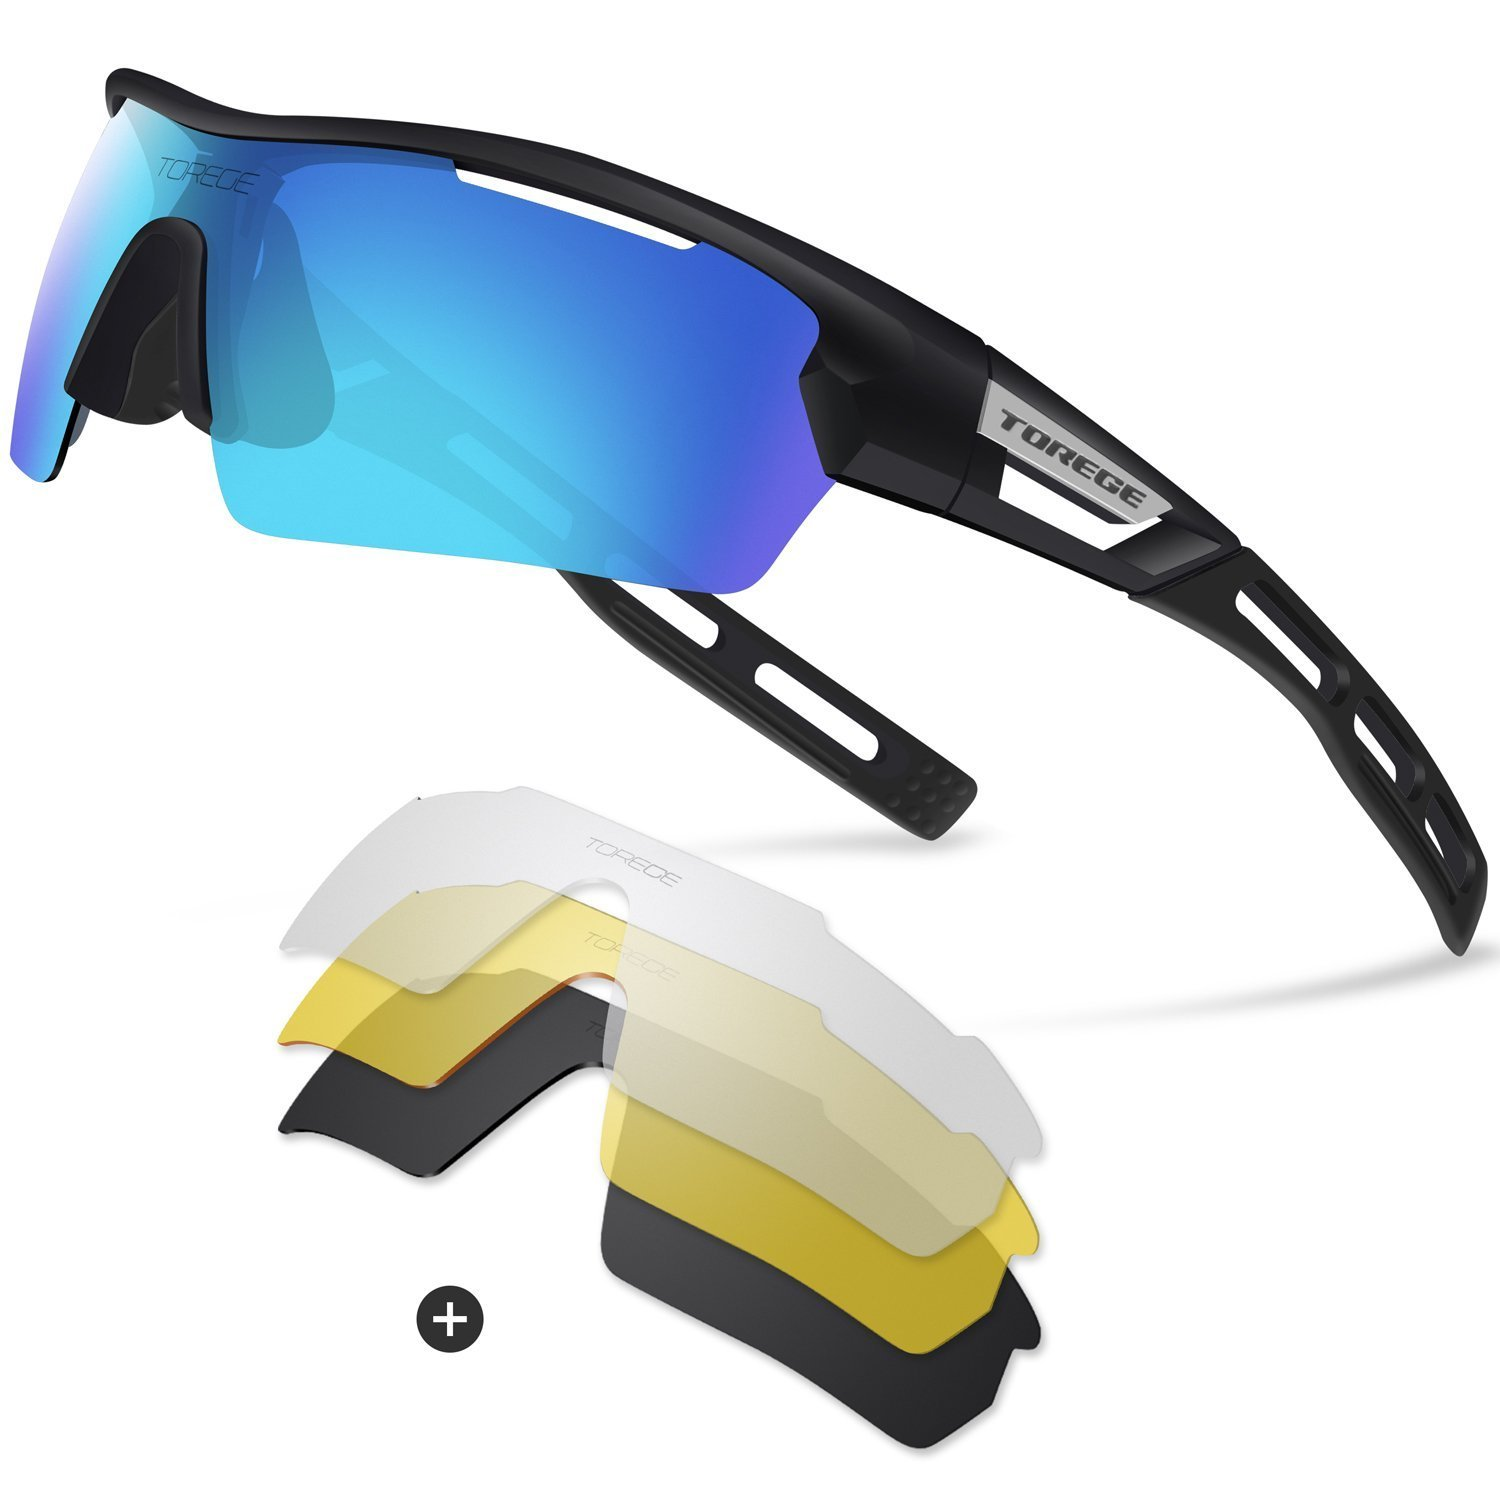 2eaa06be51 Amazon.com  Torege Polarized Sports Sunglasses for Men Women Cycling  Running Driving TR033(Black Black tips Blue lens)  Sports   Outdoors